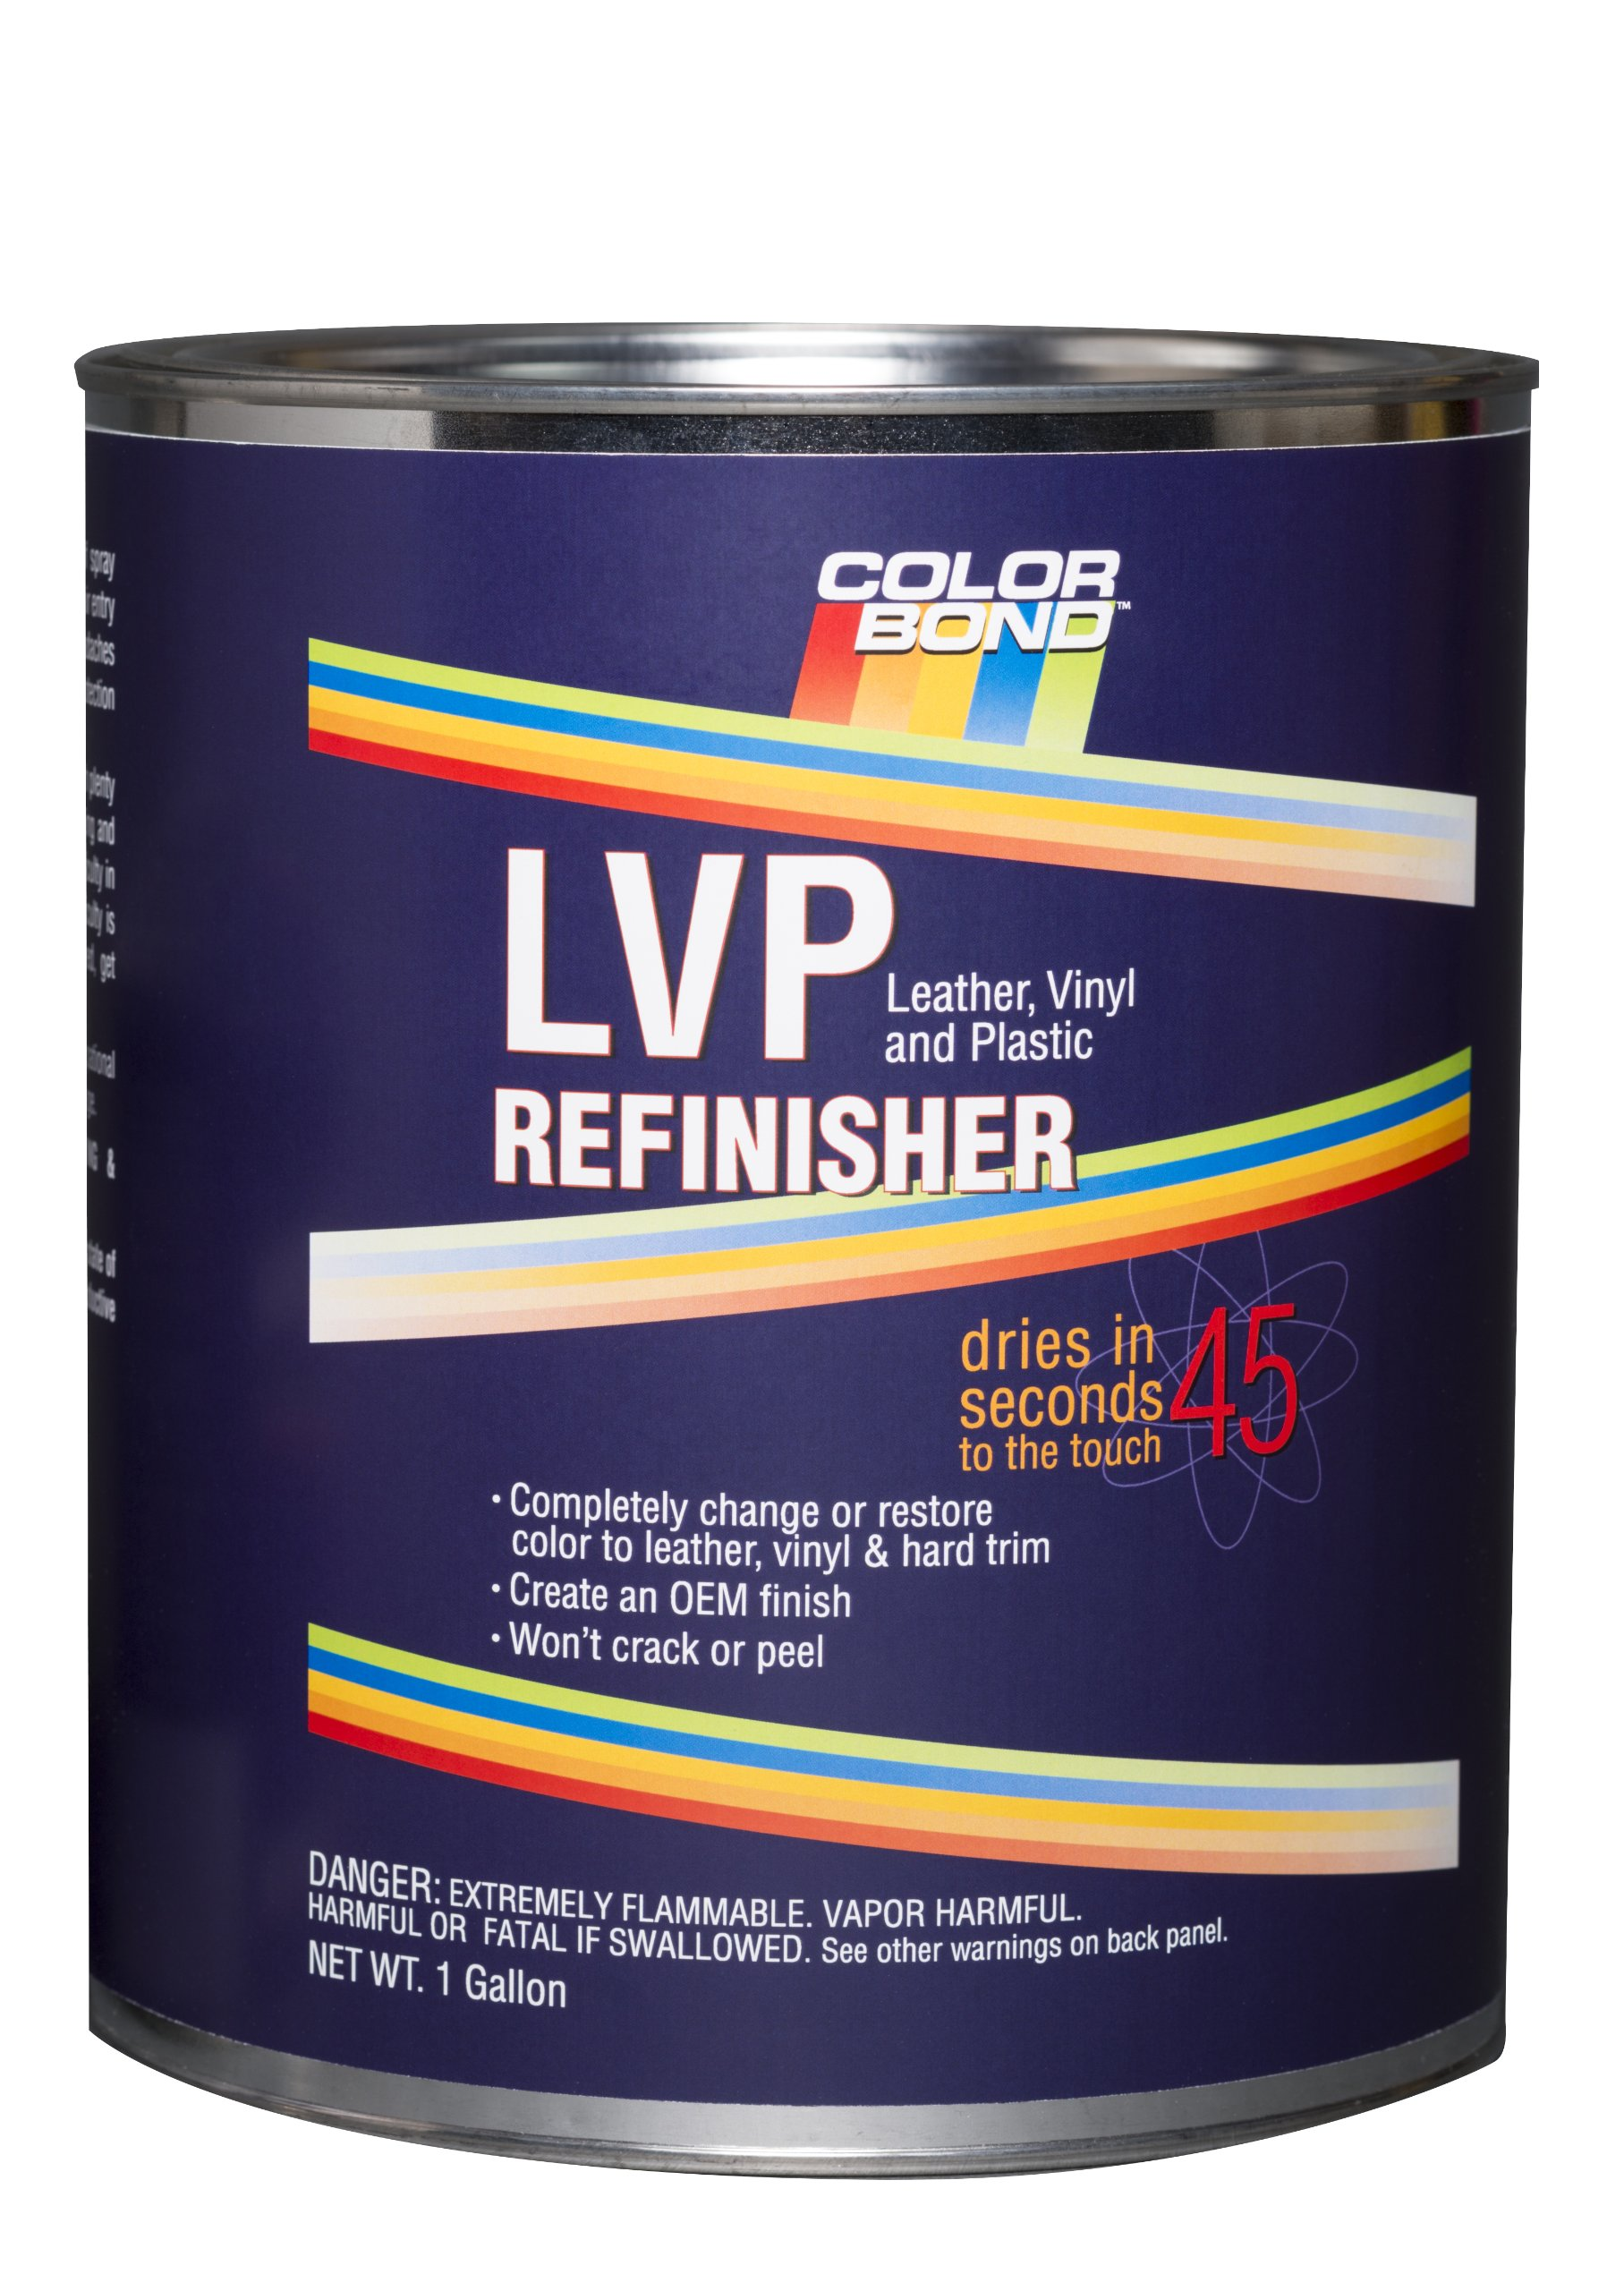 ColorBond (1240) White LVP Leather, Vinyl and Plastic Refinisher Mixing Base Paint - 1 Gallon